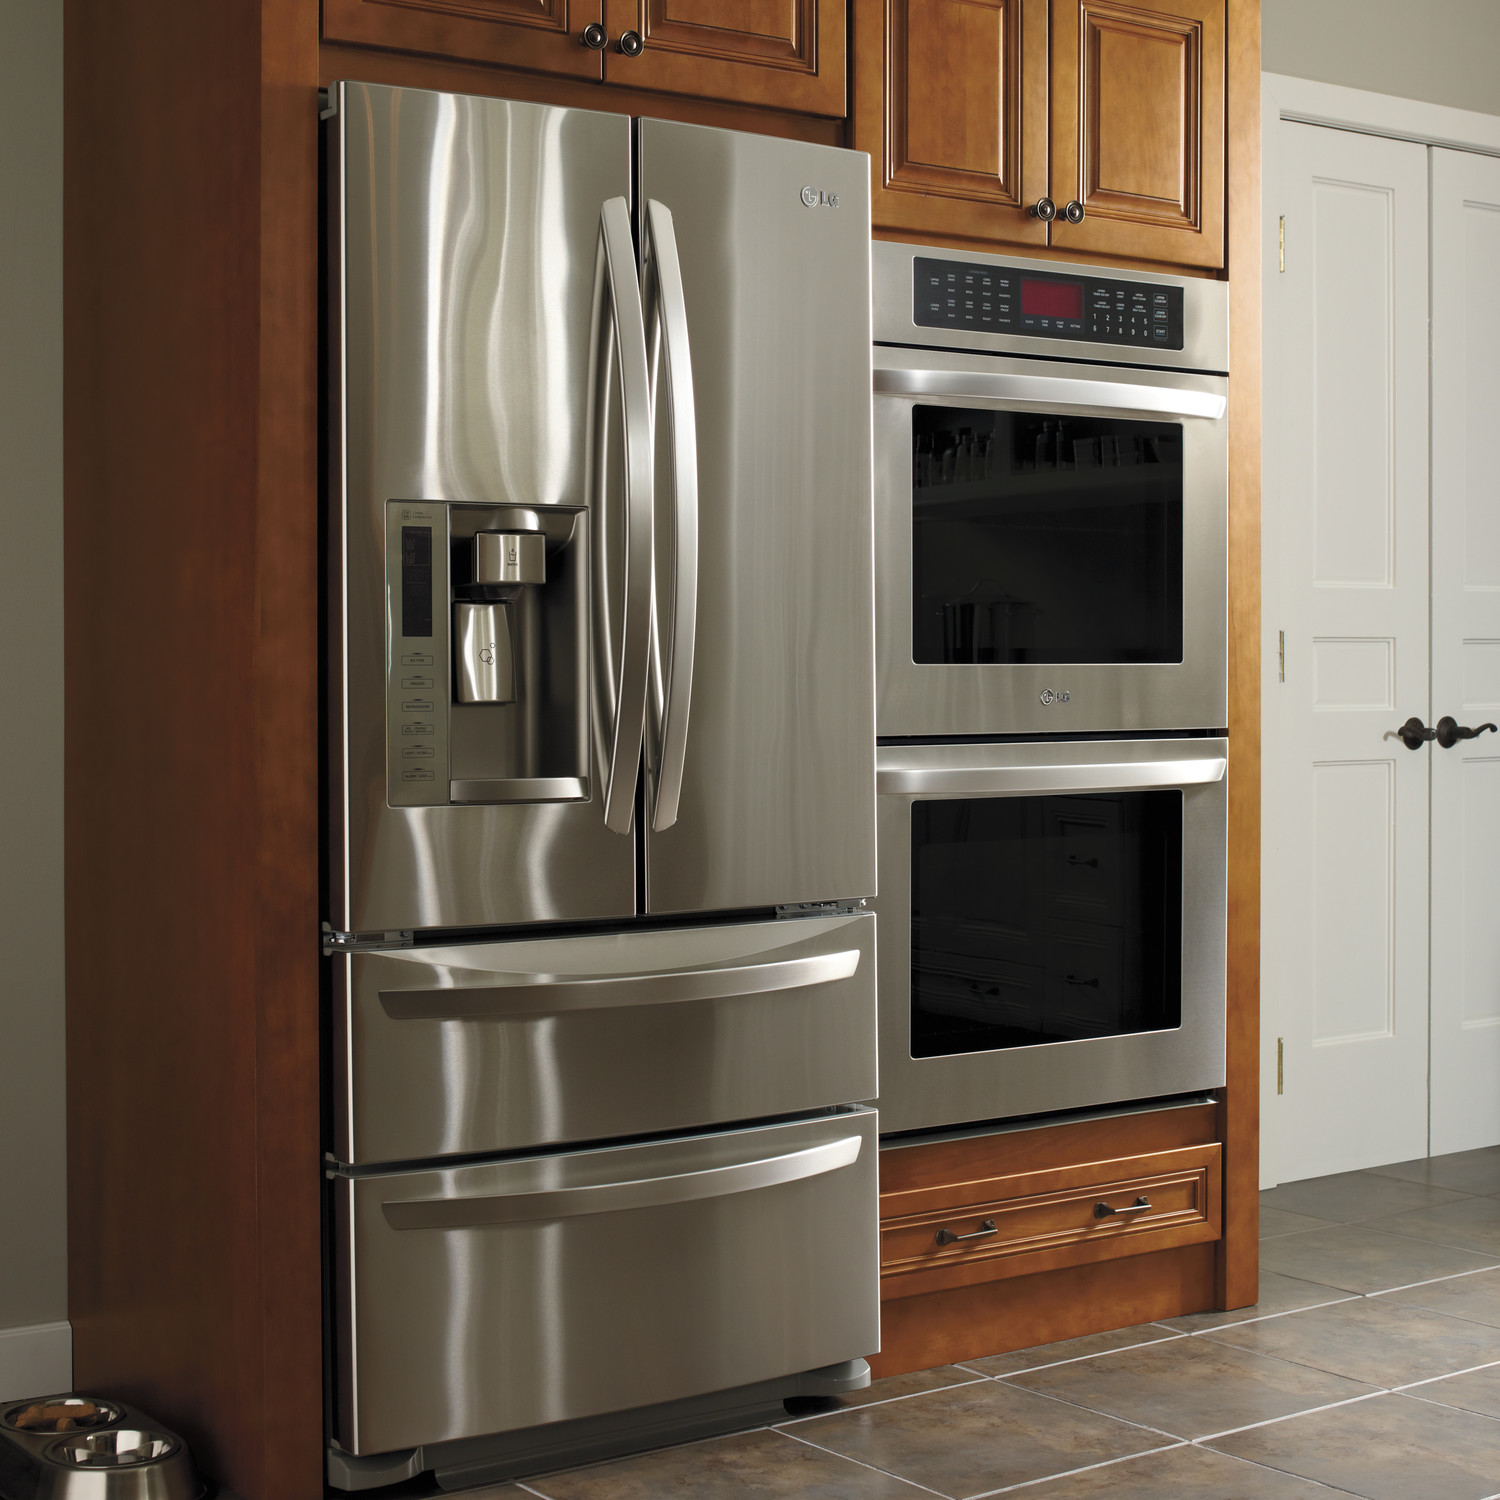 Choosing Kitchen Appliances 12 Things You Need to Know